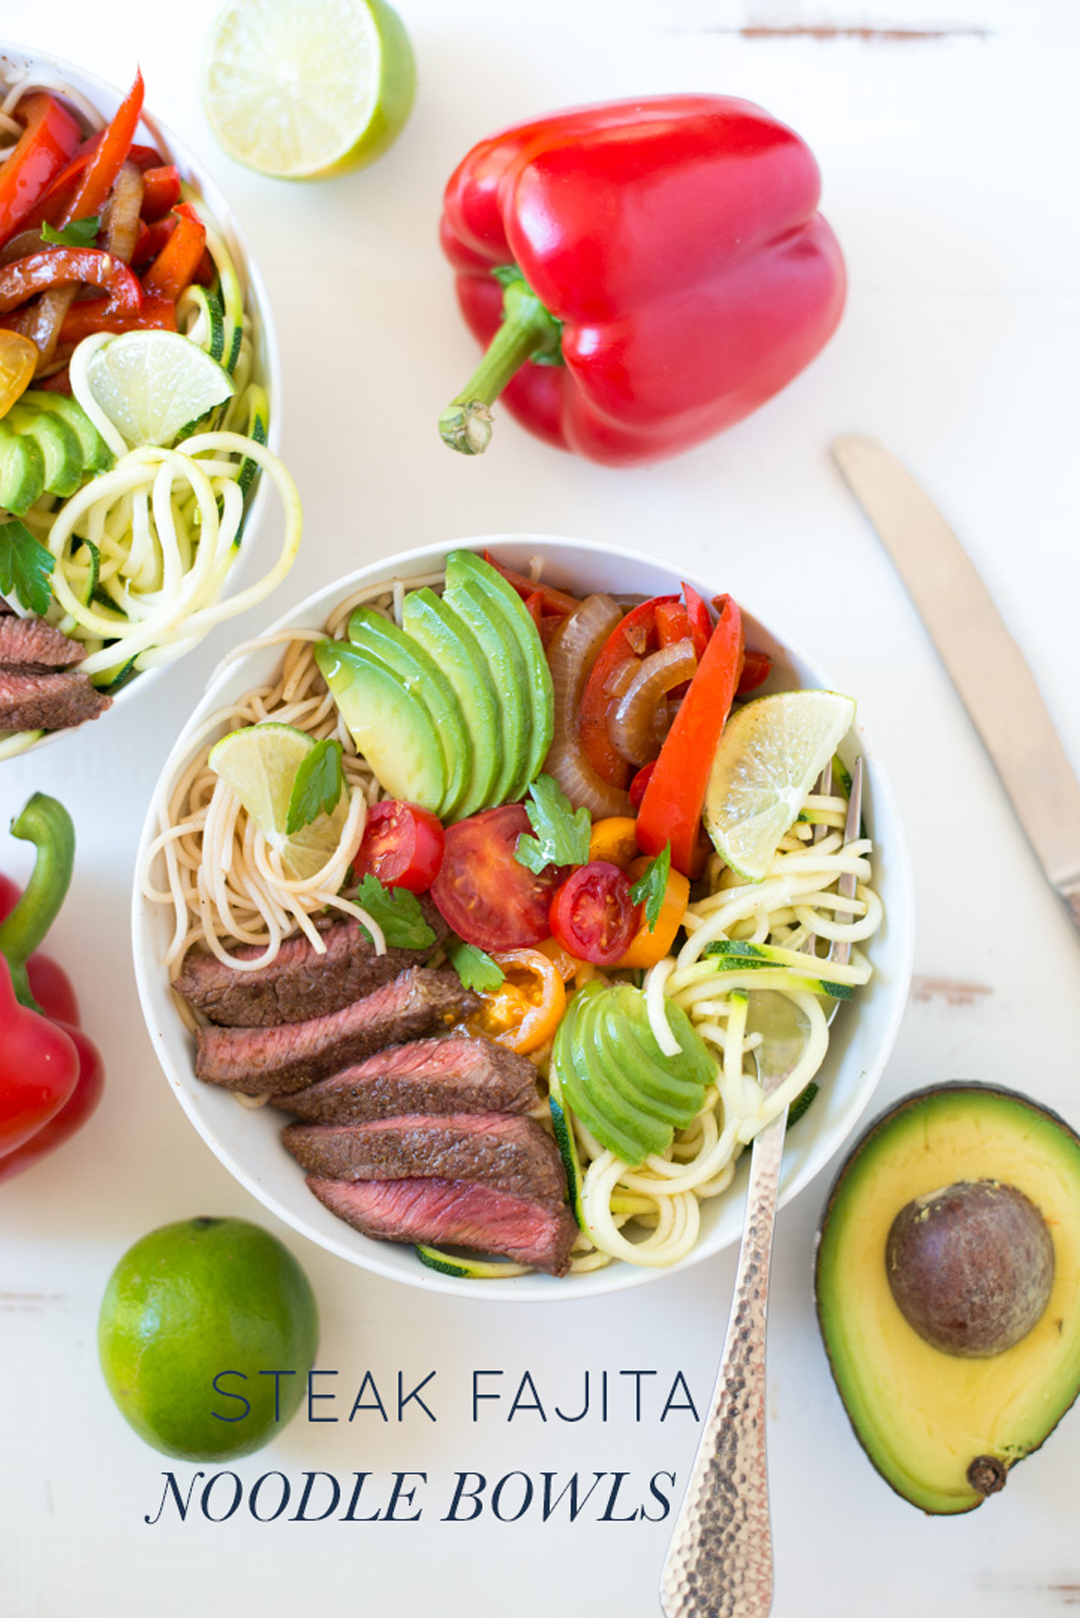 A fresh twist on fajitas, Steak Fajita Noodle Bowls are easy to make and can be made with pasta, zoodles, or both!